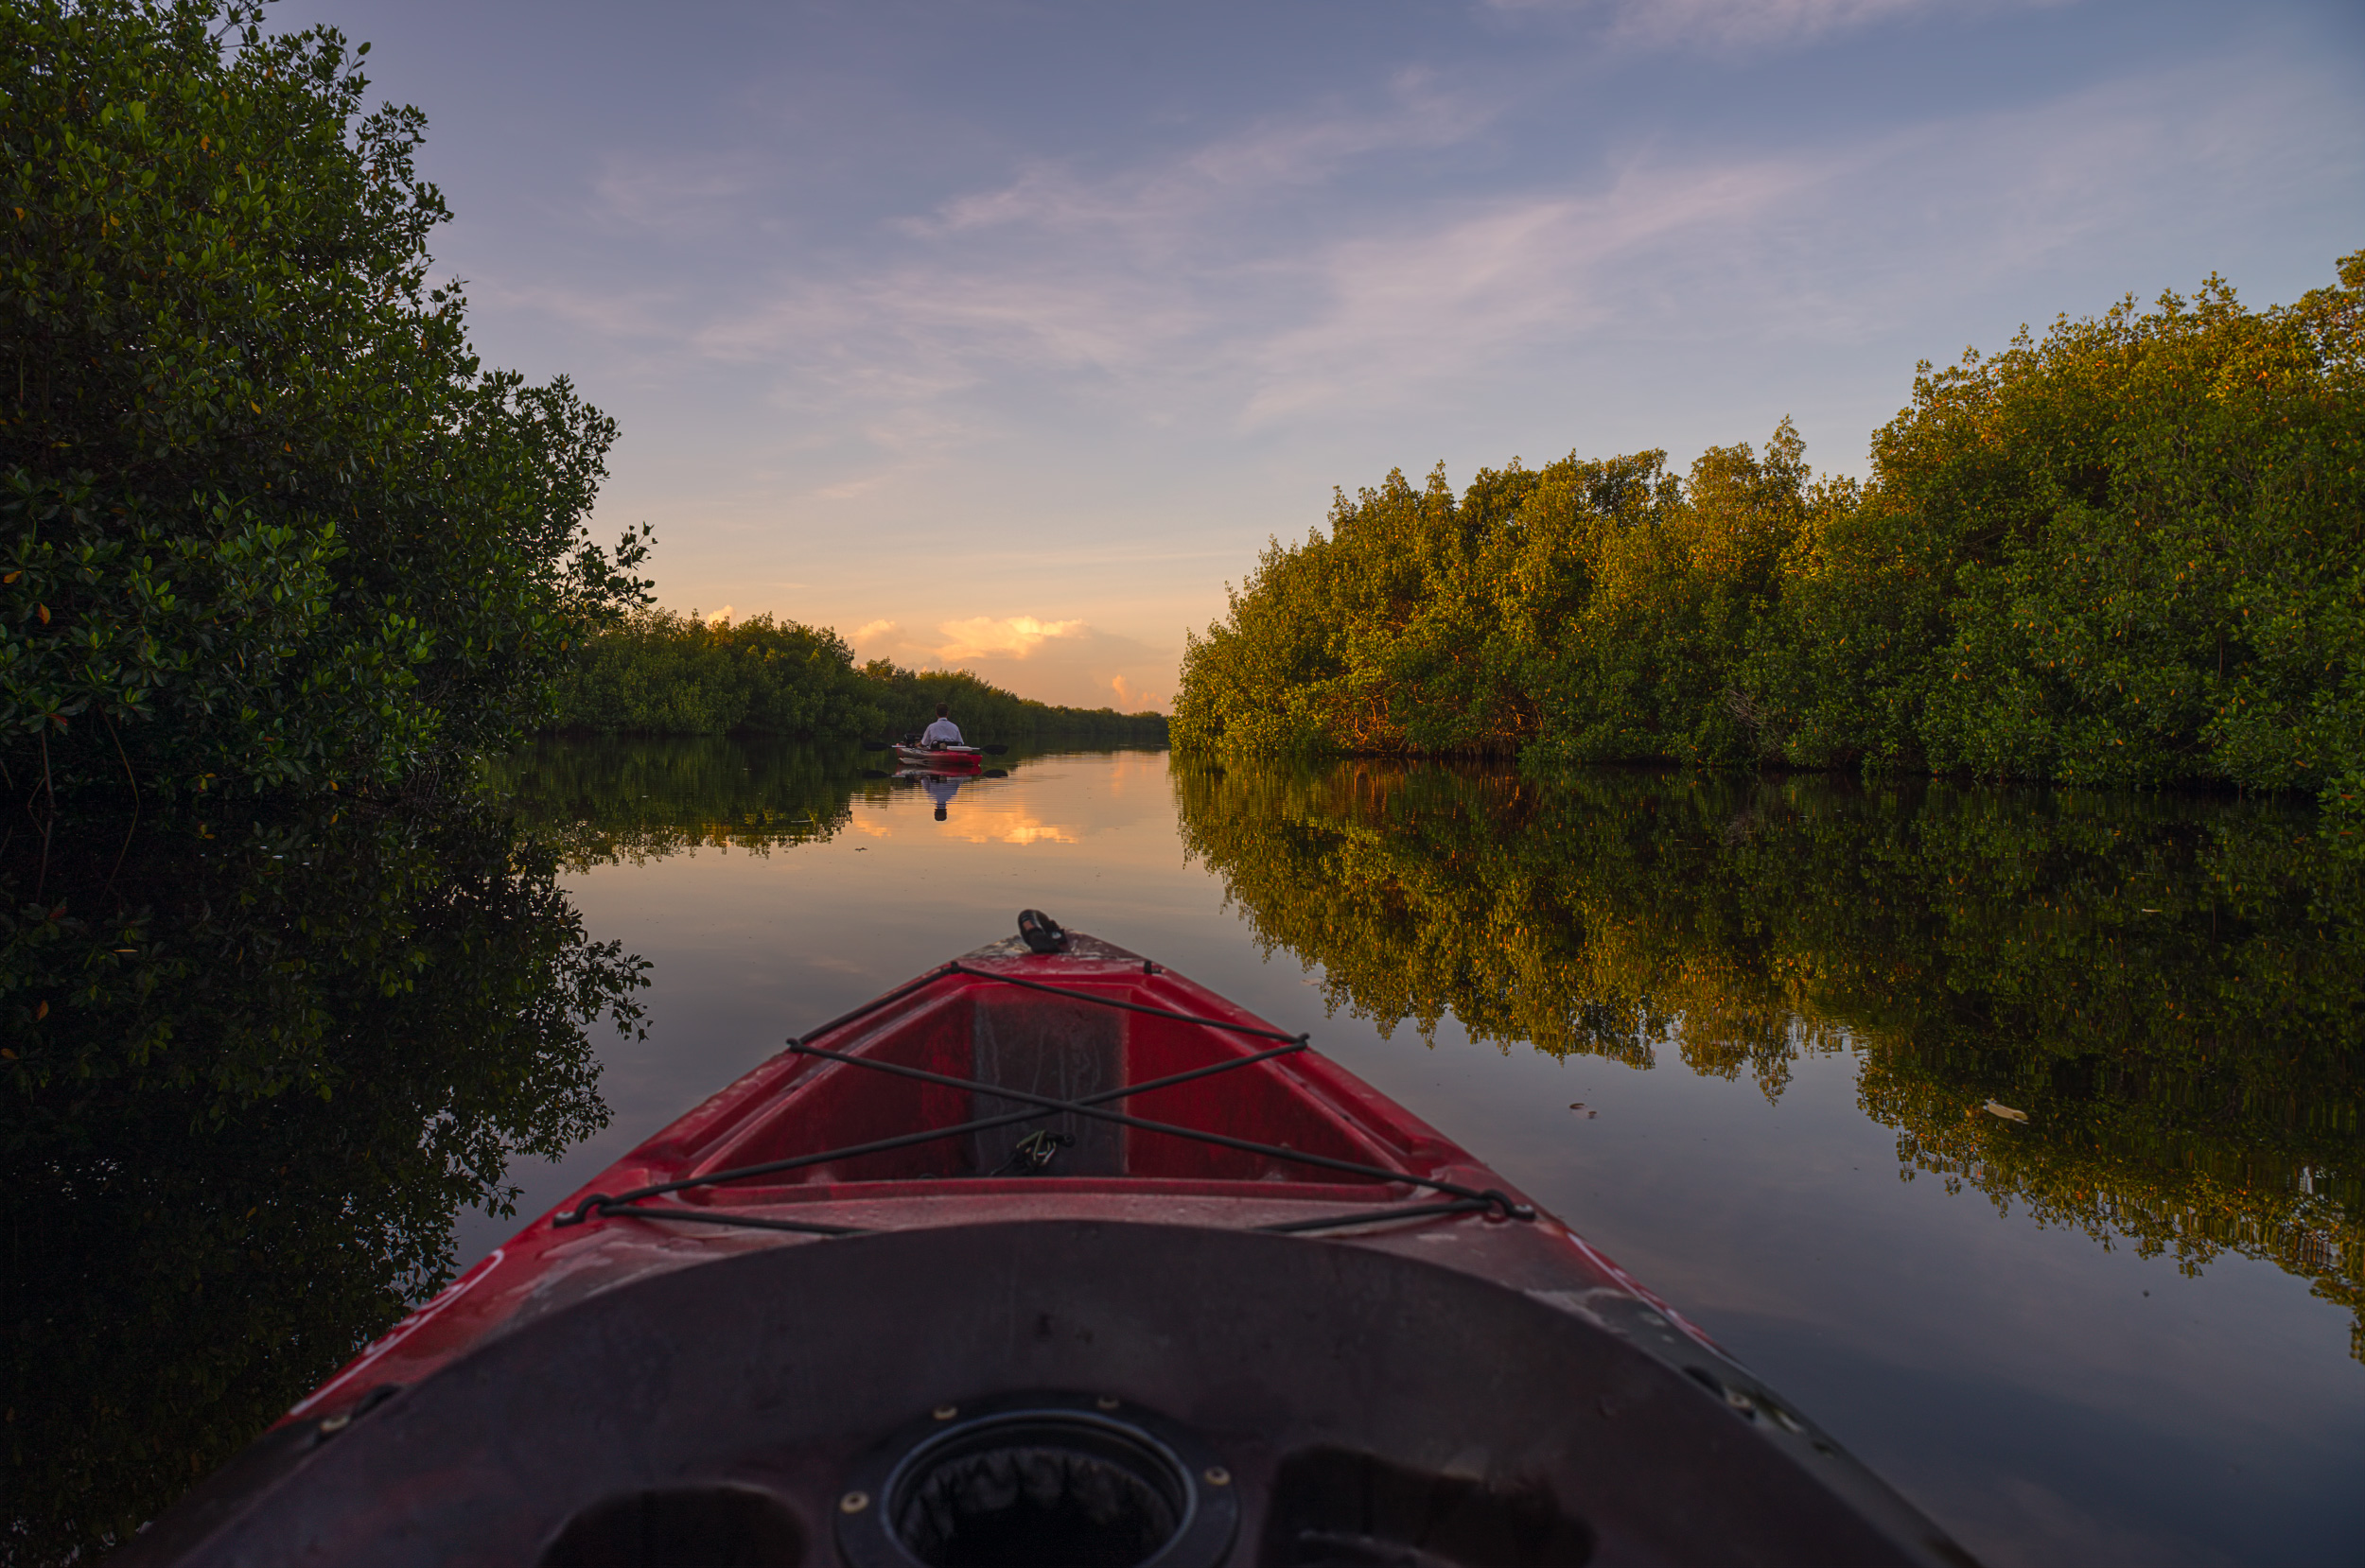 Kayaking Through The Mangrove Forest -Kayaking through the mangrove forest at Fakahatchee Strand Preserve State Park in the Everglades.